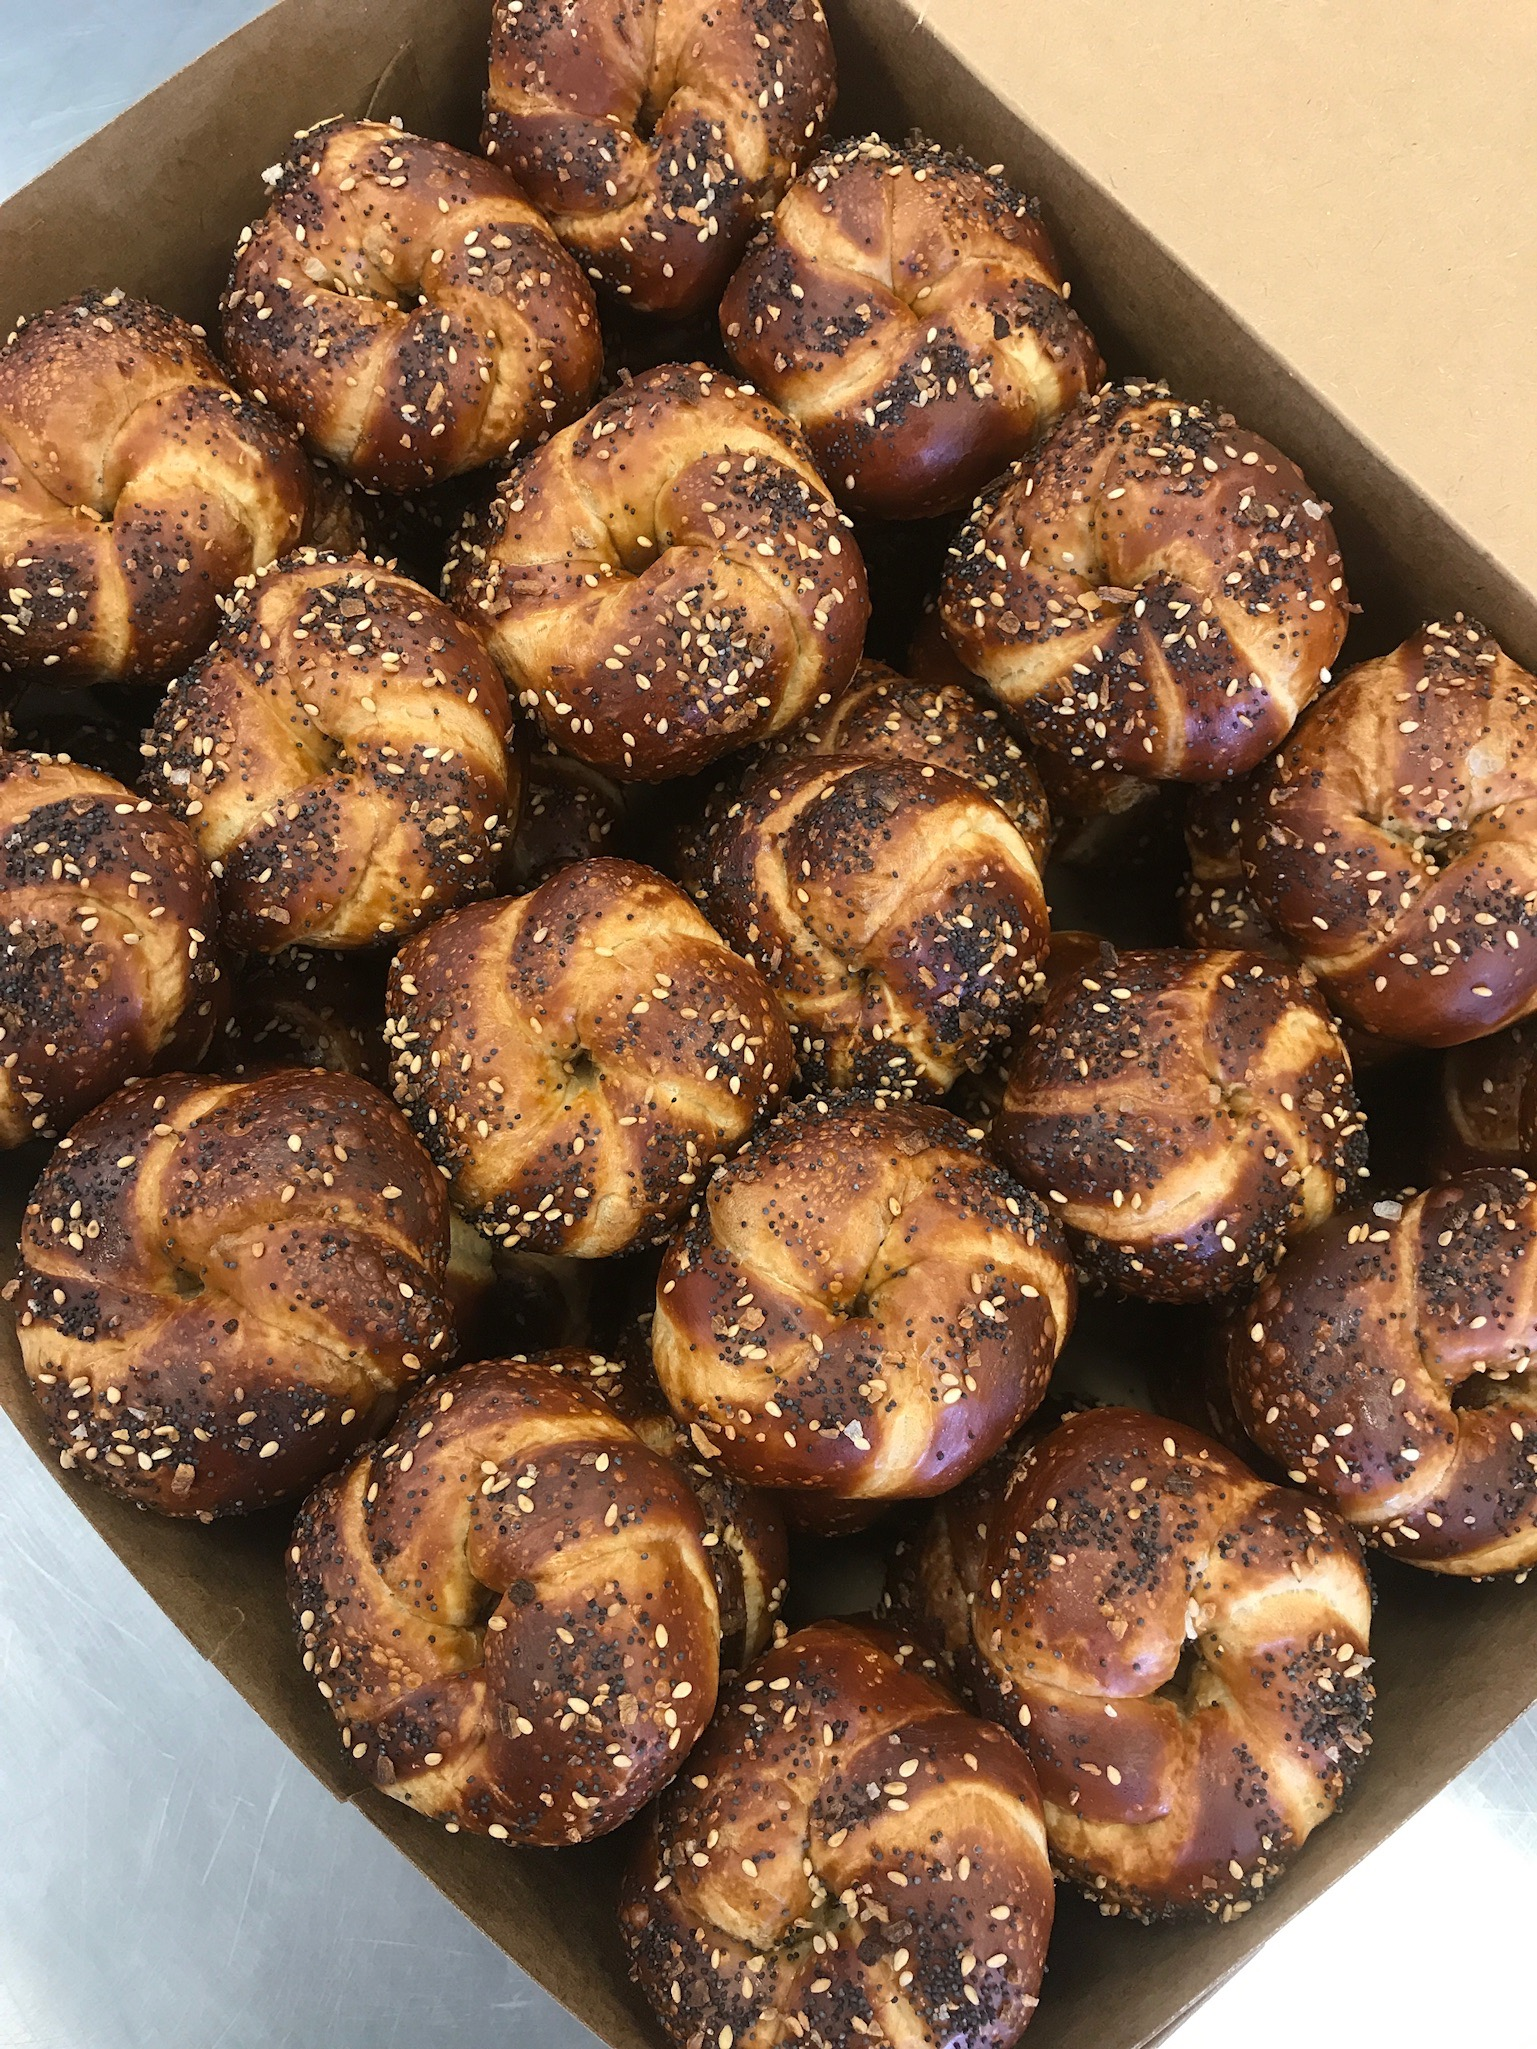 Knots - Bite-sized pretzels with various toppings